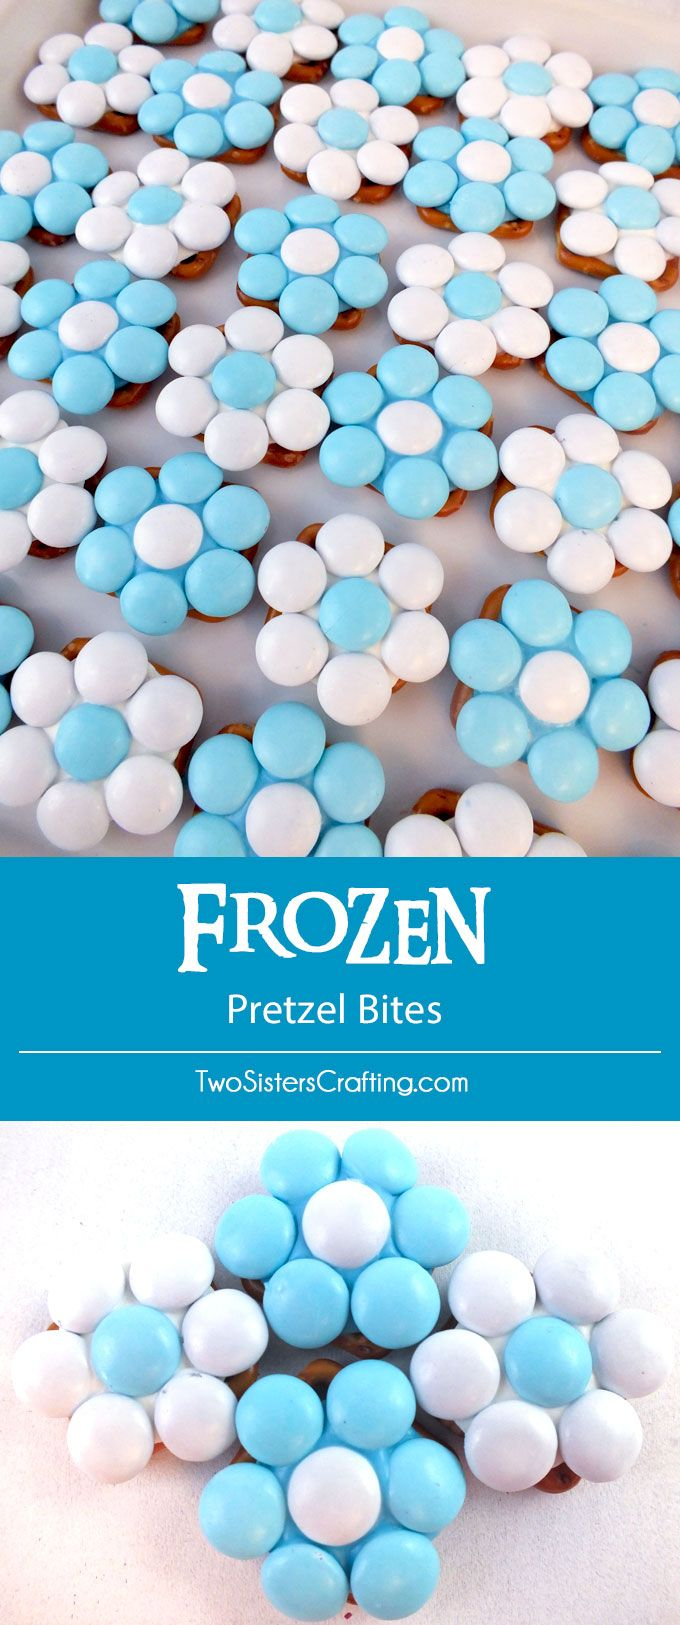 Our Frozen Pretzel Bites are the perfect sweet and salty treat for a Frozen Birthday Party and will look amazing on your Frozen Party Dessert Table. So pretty, so yummy and so easy to make. Follow us for more fun Frozen Party Ideas.